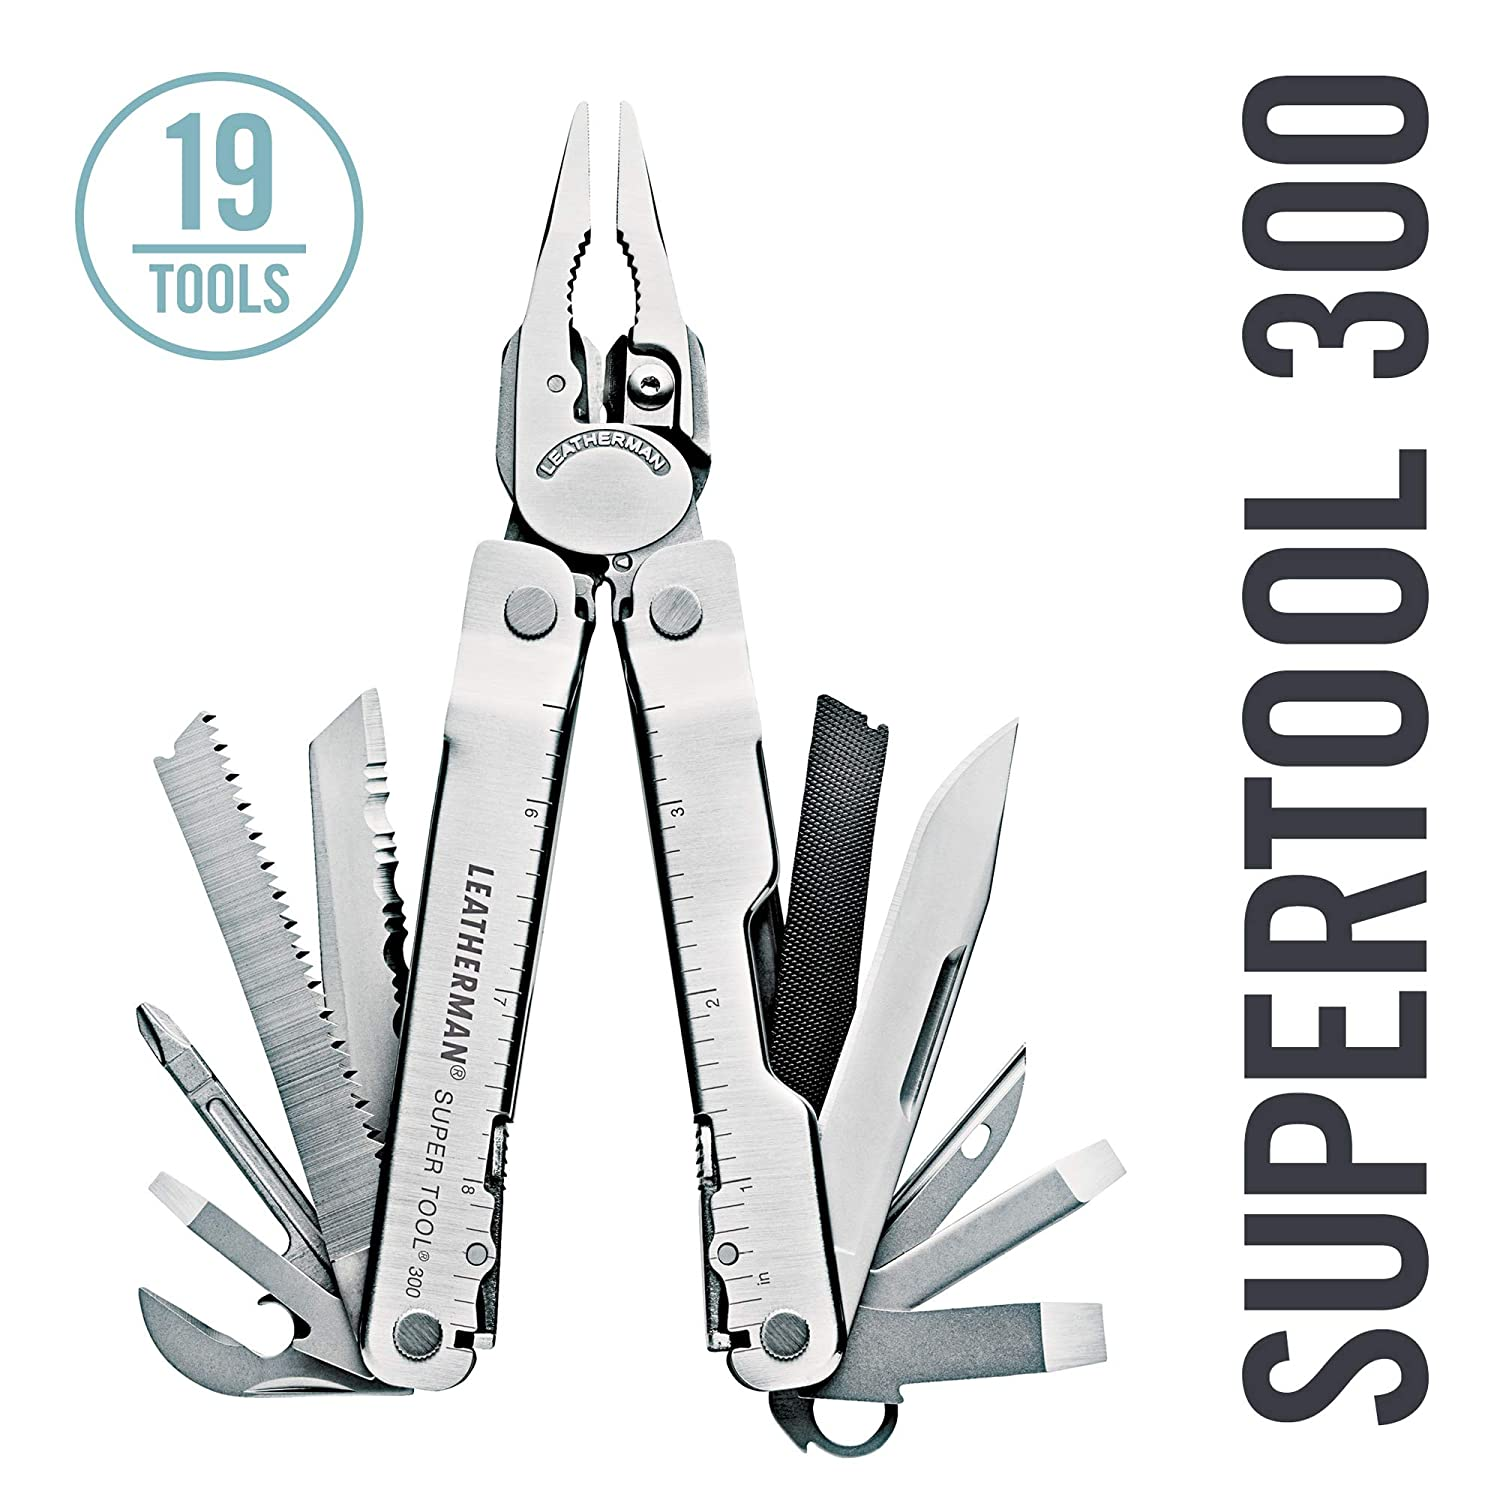 Leatherman Super Tool 300 19tools Acero inoxidable alicate multiherramienta - Alicates de múltiples herramientas (Acero inoxidable, Acero inoxidable, ...